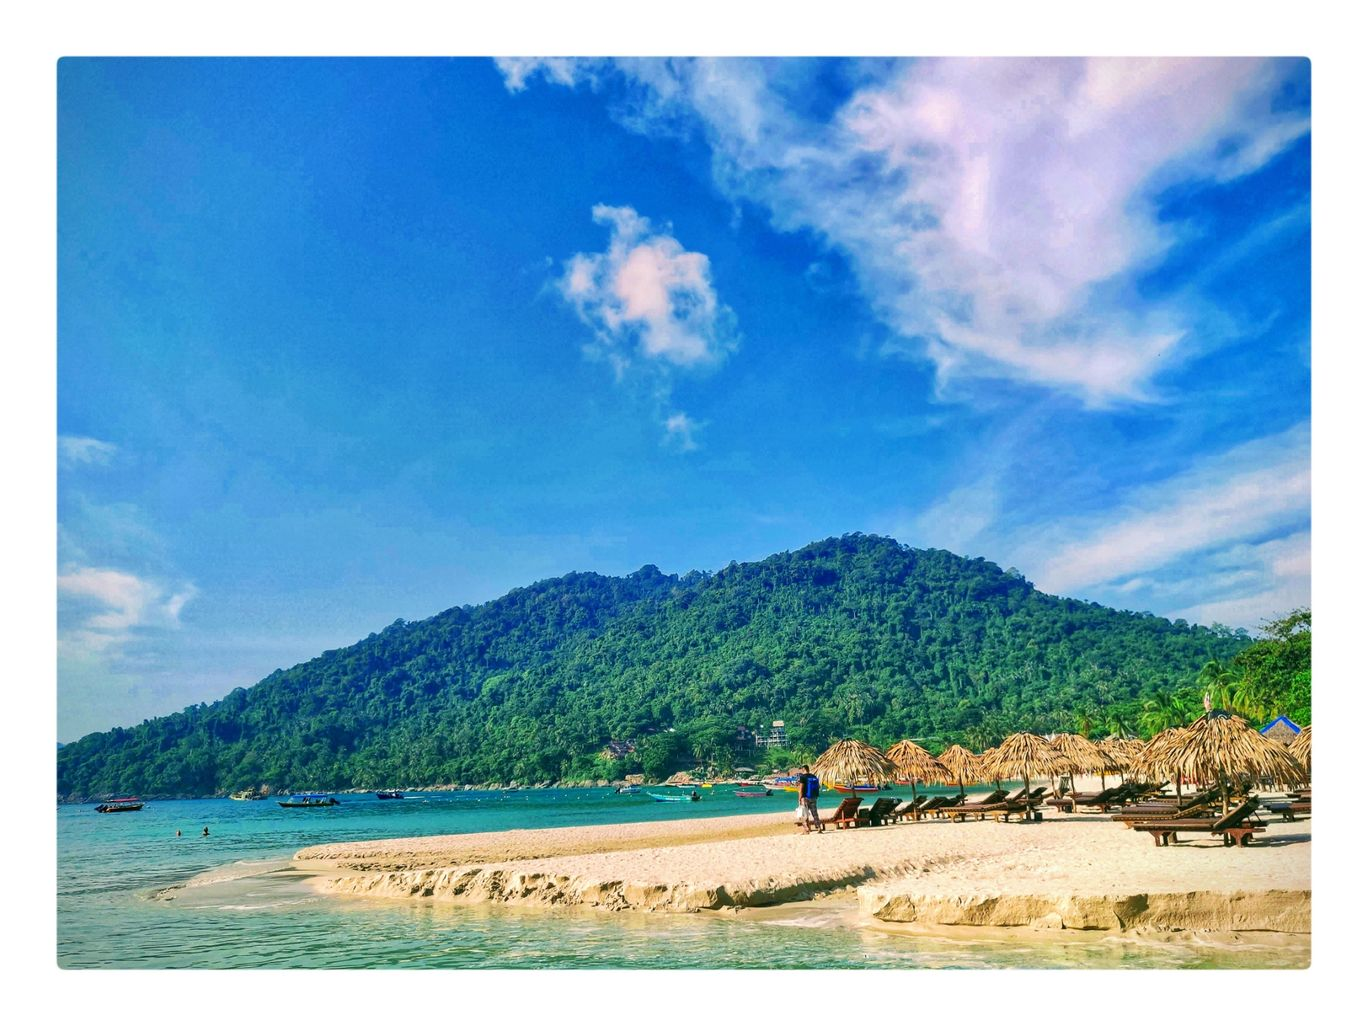 Photo of Perhentian Islands By Kshitiz Verma